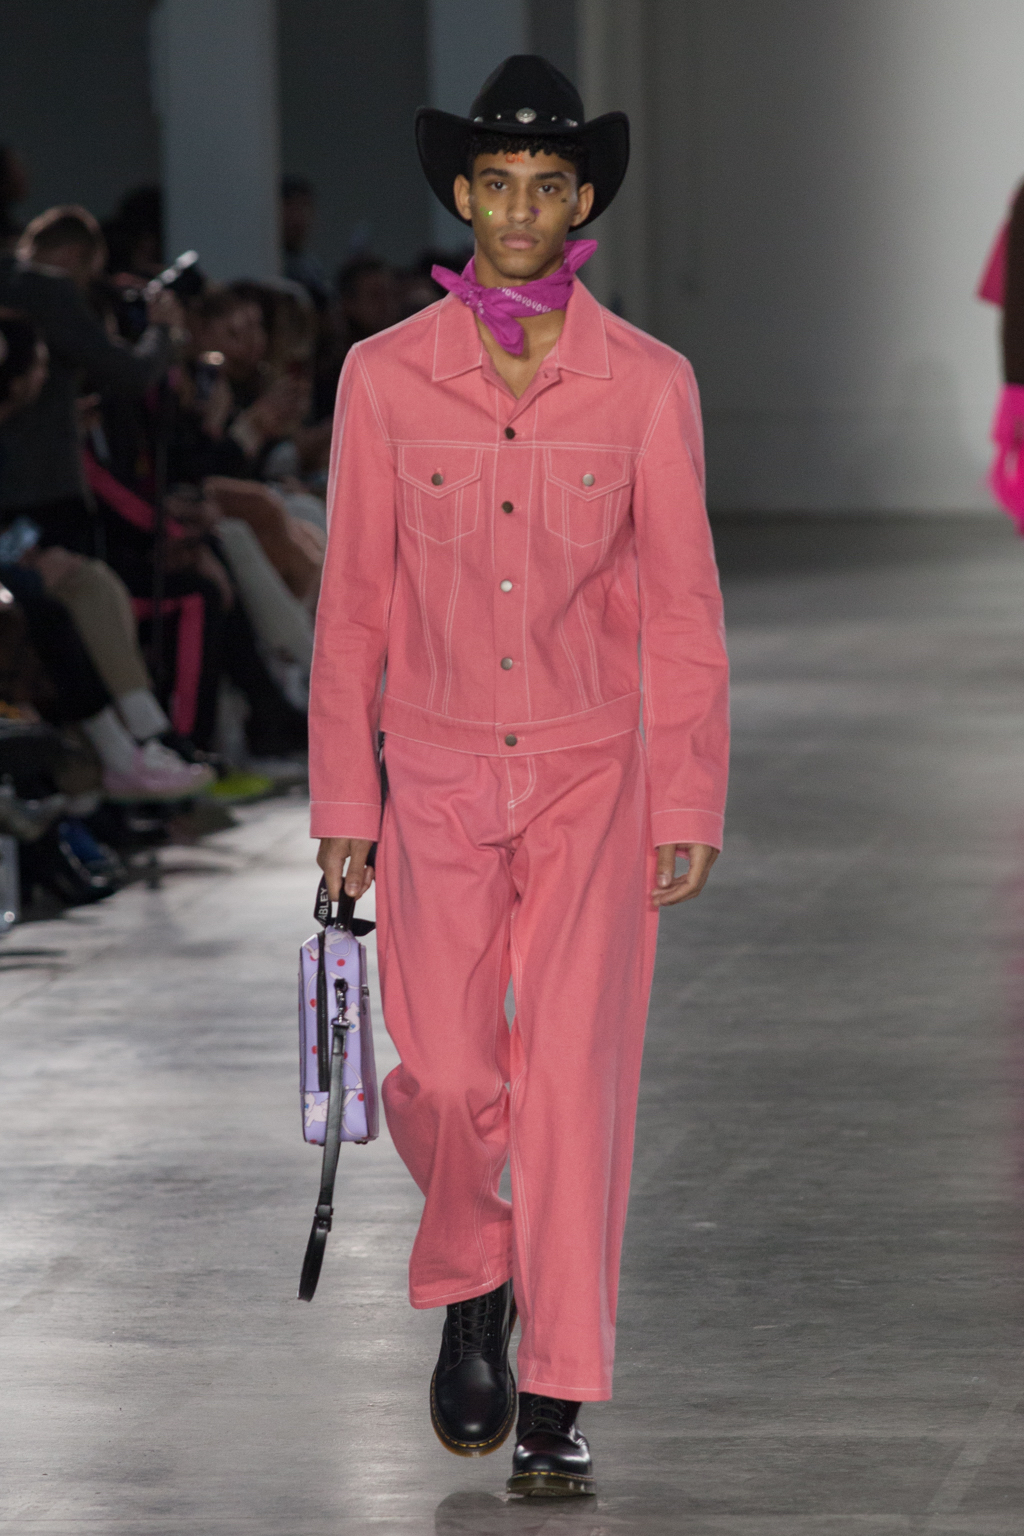 LFWM-AW19-Bobby-Abley-Huw-Jenkins-The-Upcoming-4.jpg